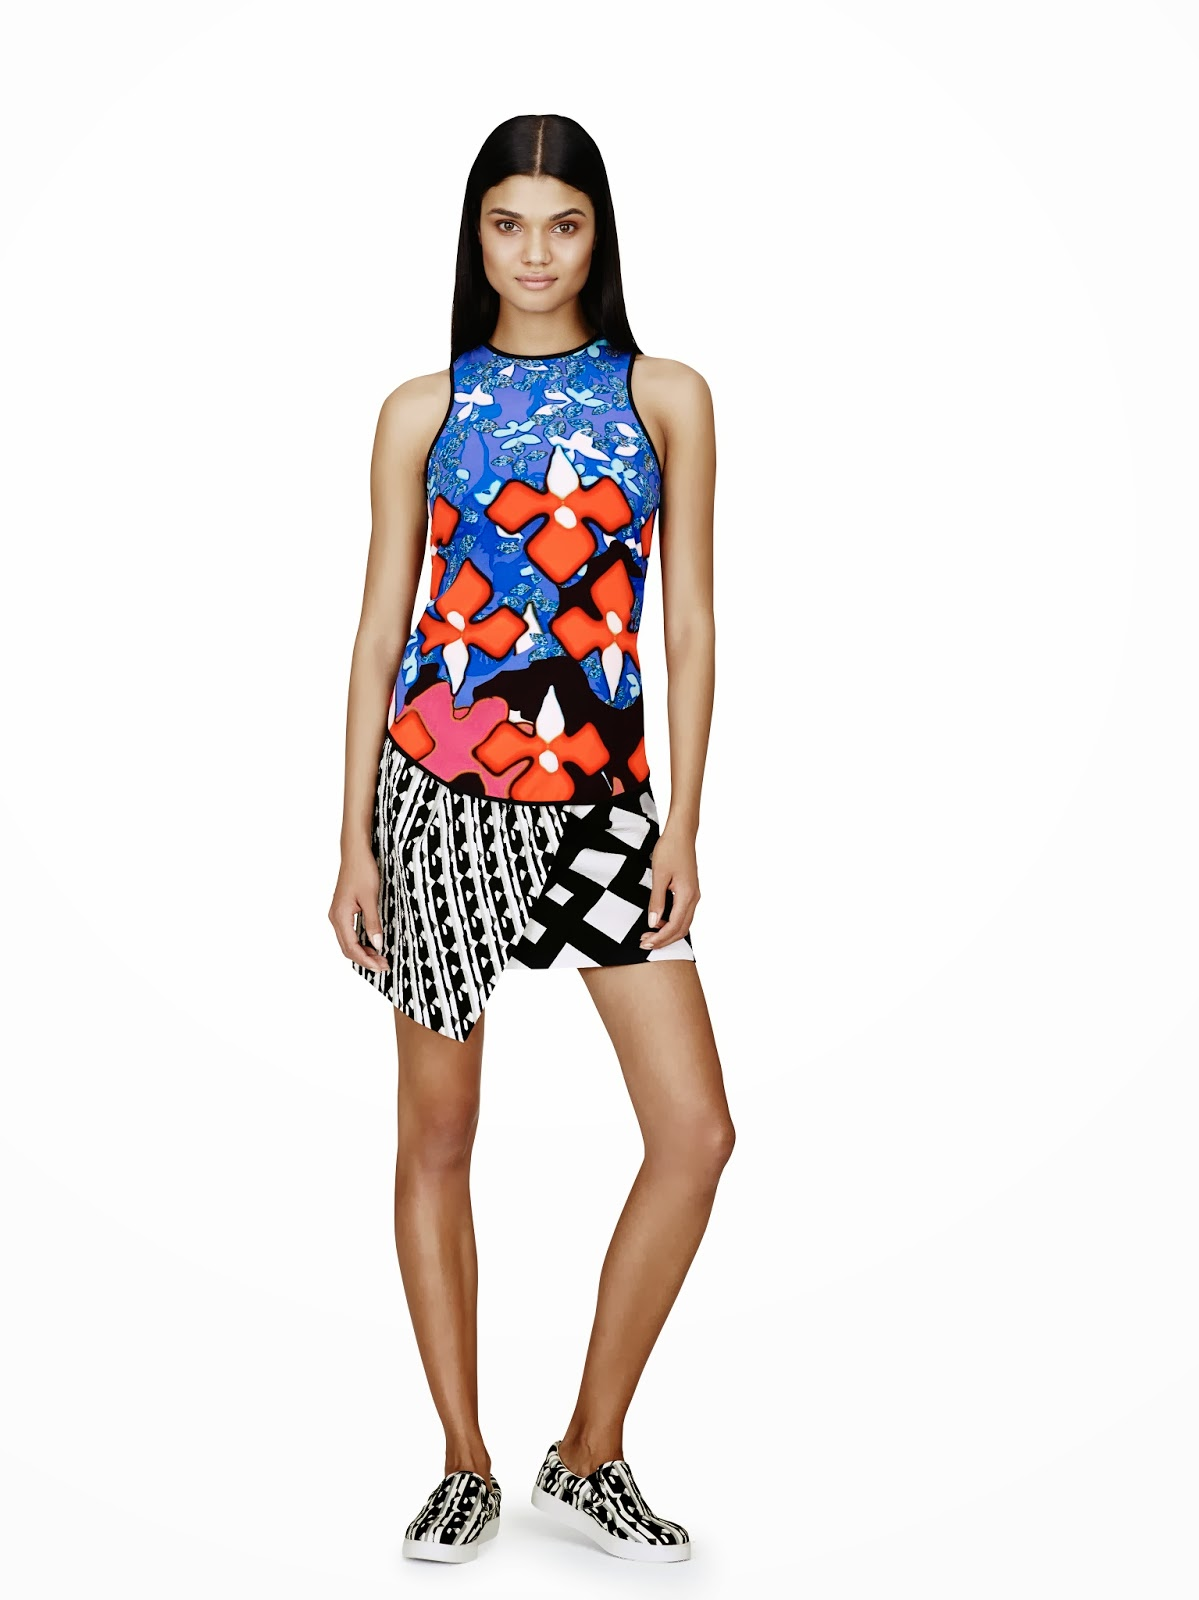 Peter-Pilotto-Target, tan-top, floral, blank-and-white-shorts, Spring-Summer-2014